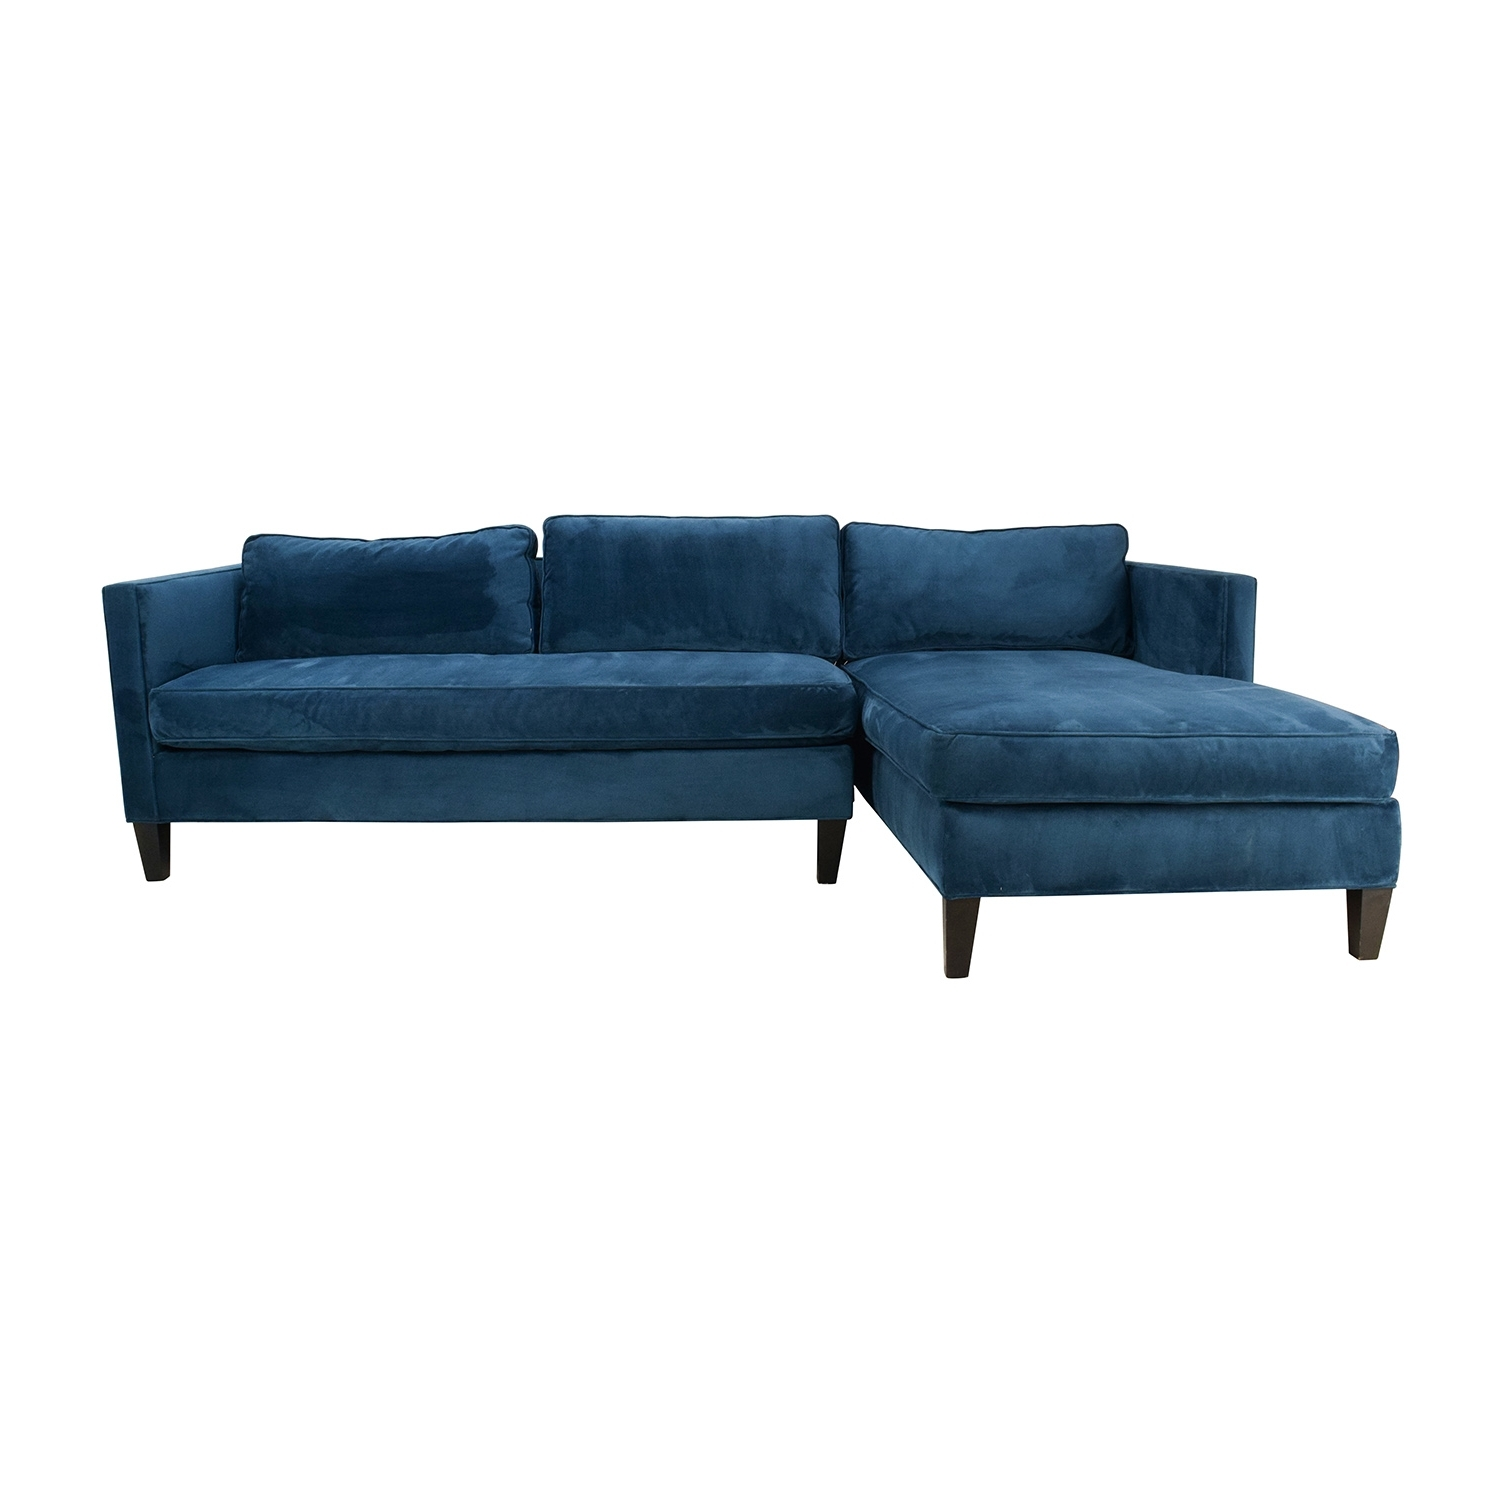 [%67% Off – West Elm West Elm Dunham Sectional Sofa / Sofas Regarding Favorite West Elm Sectional Sofas|West Elm Sectional Sofas Pertaining To Favorite 67% Off – West Elm West Elm Dunham Sectional Sofa / Sofas|Current West Elm Sectional Sofas In 67% Off – West Elm West Elm Dunham Sectional Sofa / Sofas|2019 67% Off – West Elm West Elm Dunham Sectional Sofa / Sofas In West Elm Sectional Sofas%] (View 1 of 20)